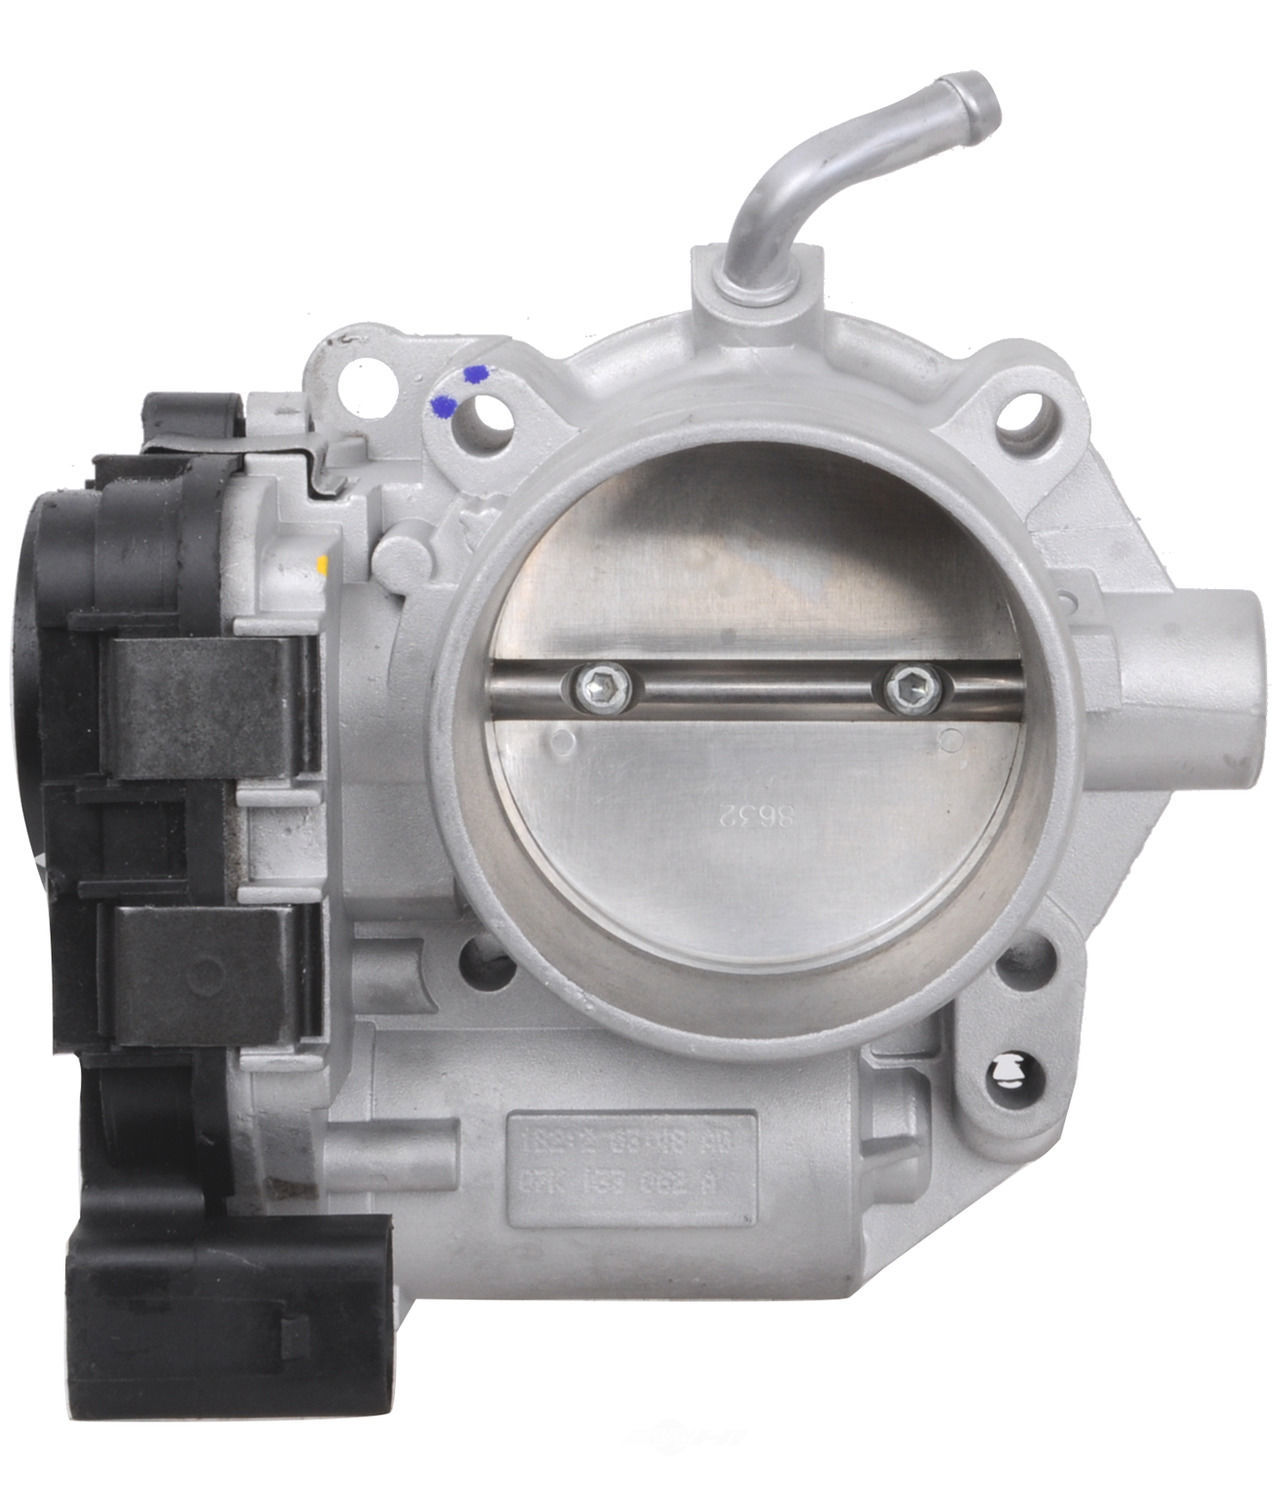 CARDONE/A-1 CARDONE - Remanufactured Throttle Body - A1C 67-4007